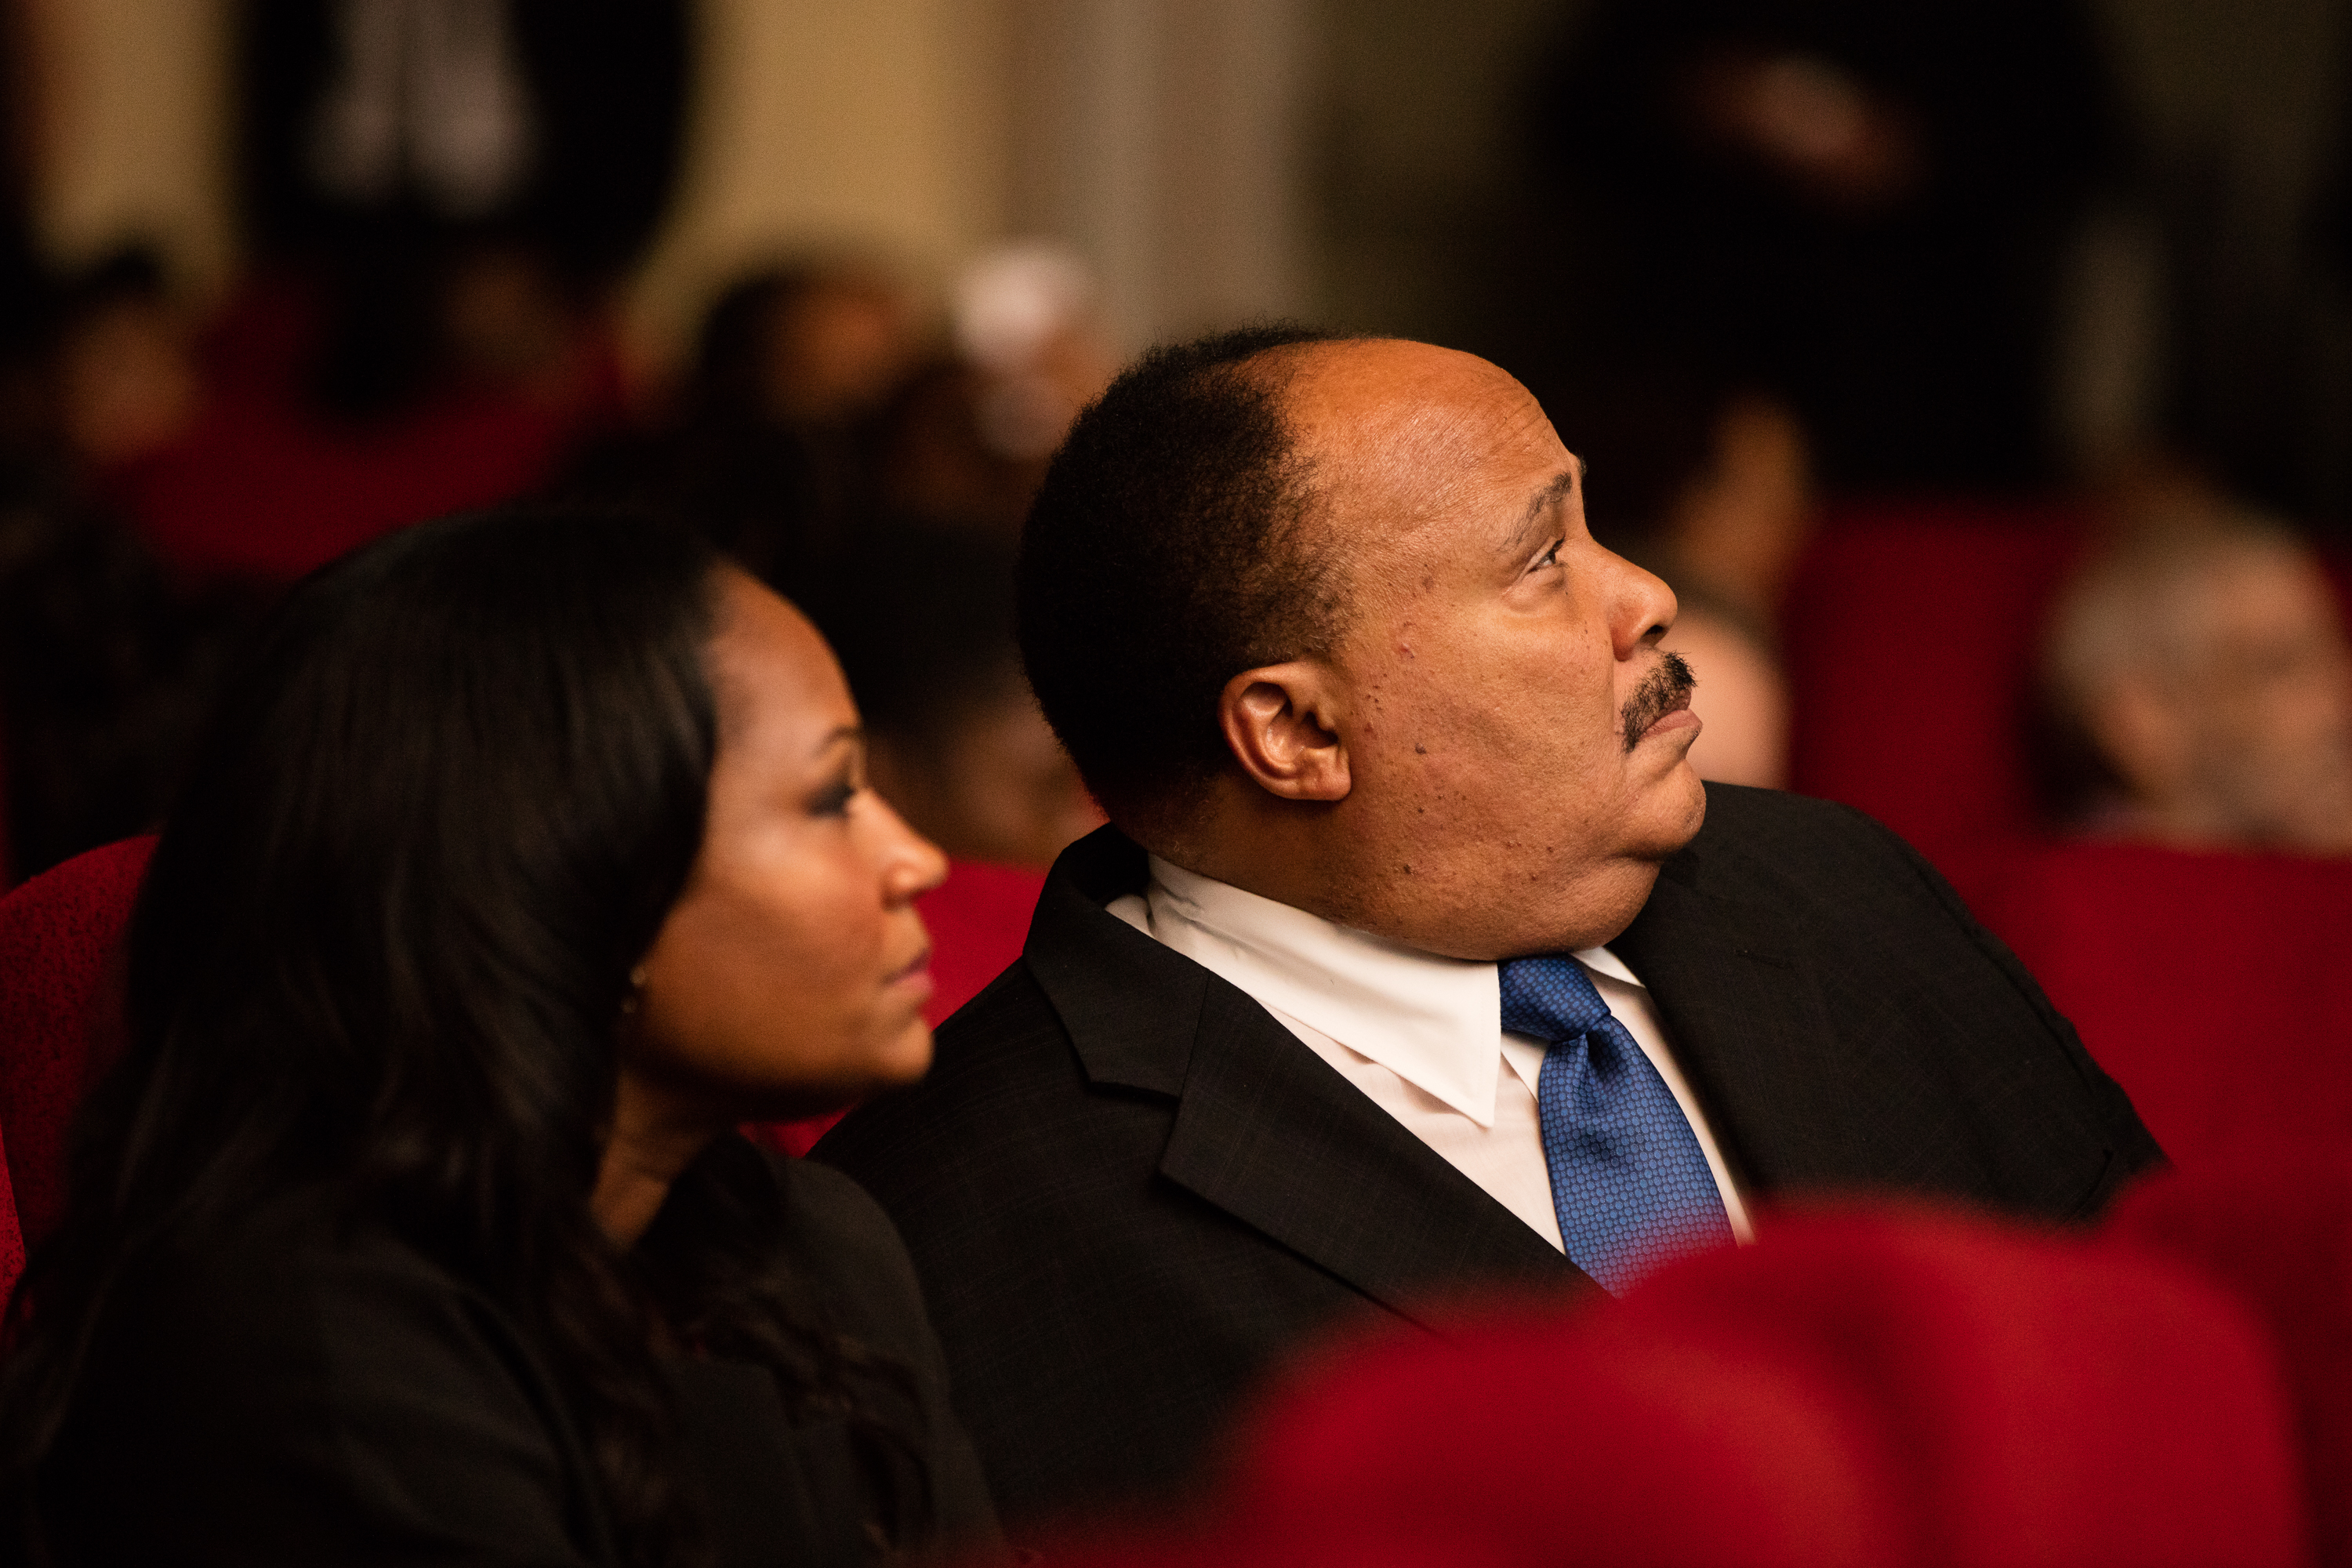 Martin Luther King III and wife Andrea Waters in the audience. Photo by Marie-Pier Savard.